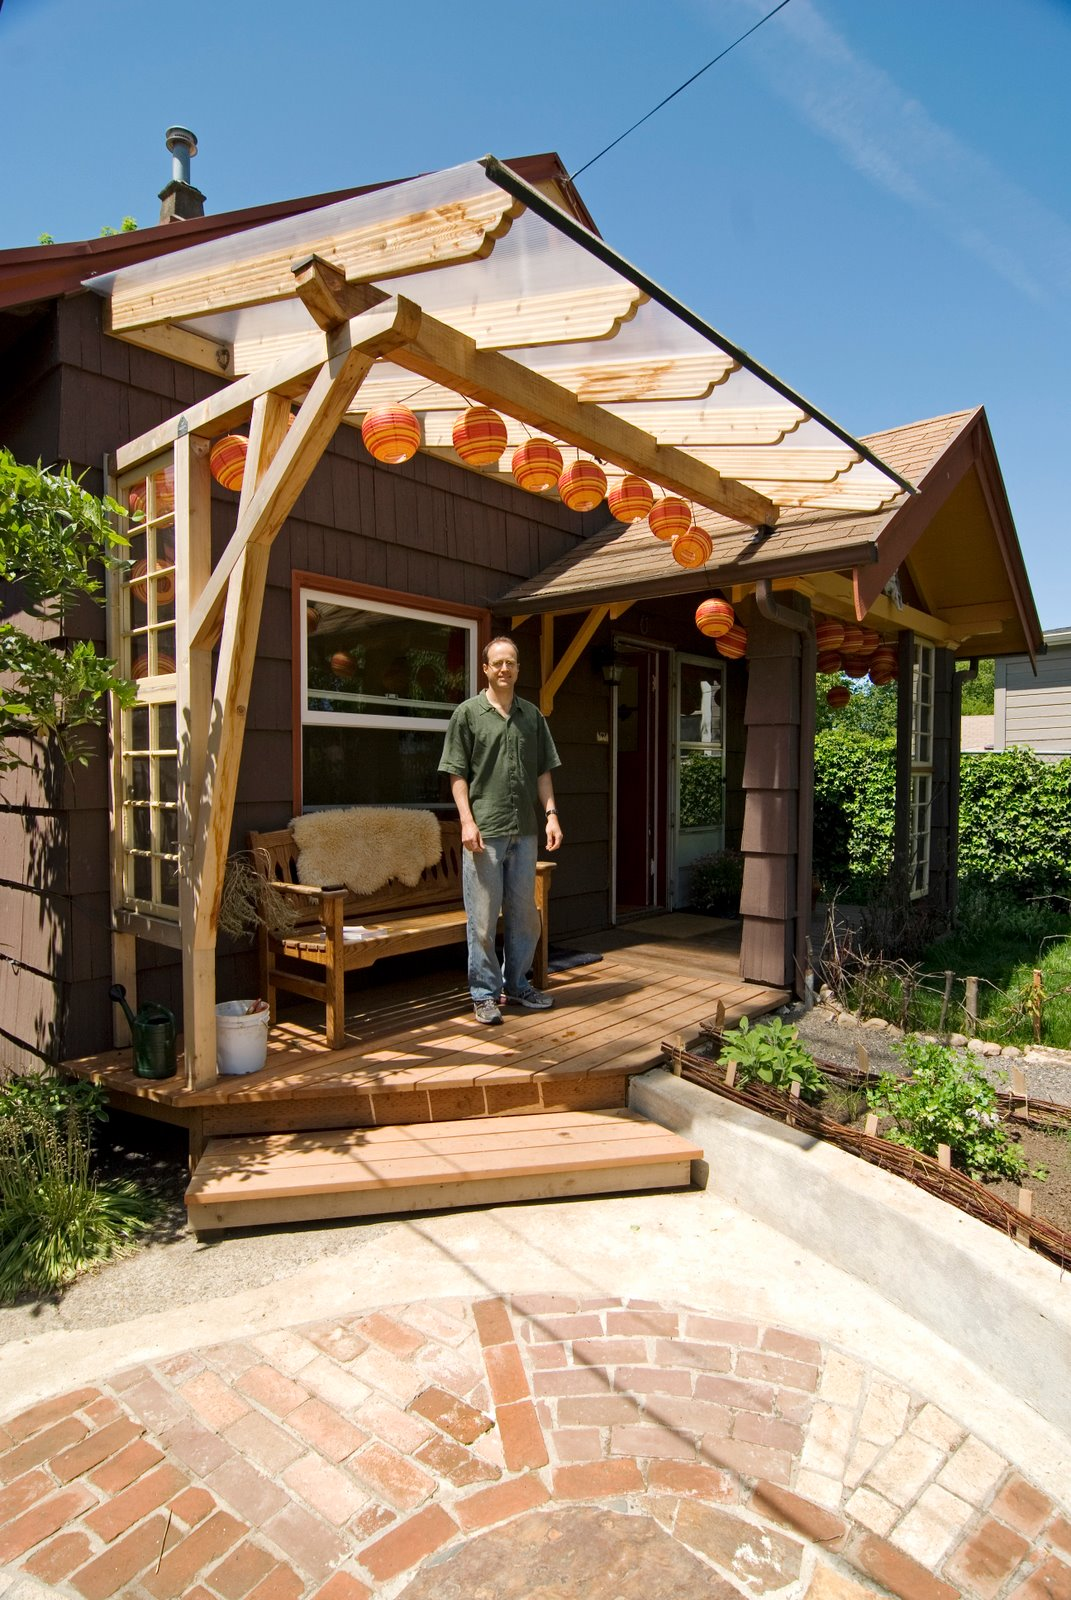 Cohousing living large in small houses small house bliss - Gallery Ruth S Garden Cottages Small House Bliss